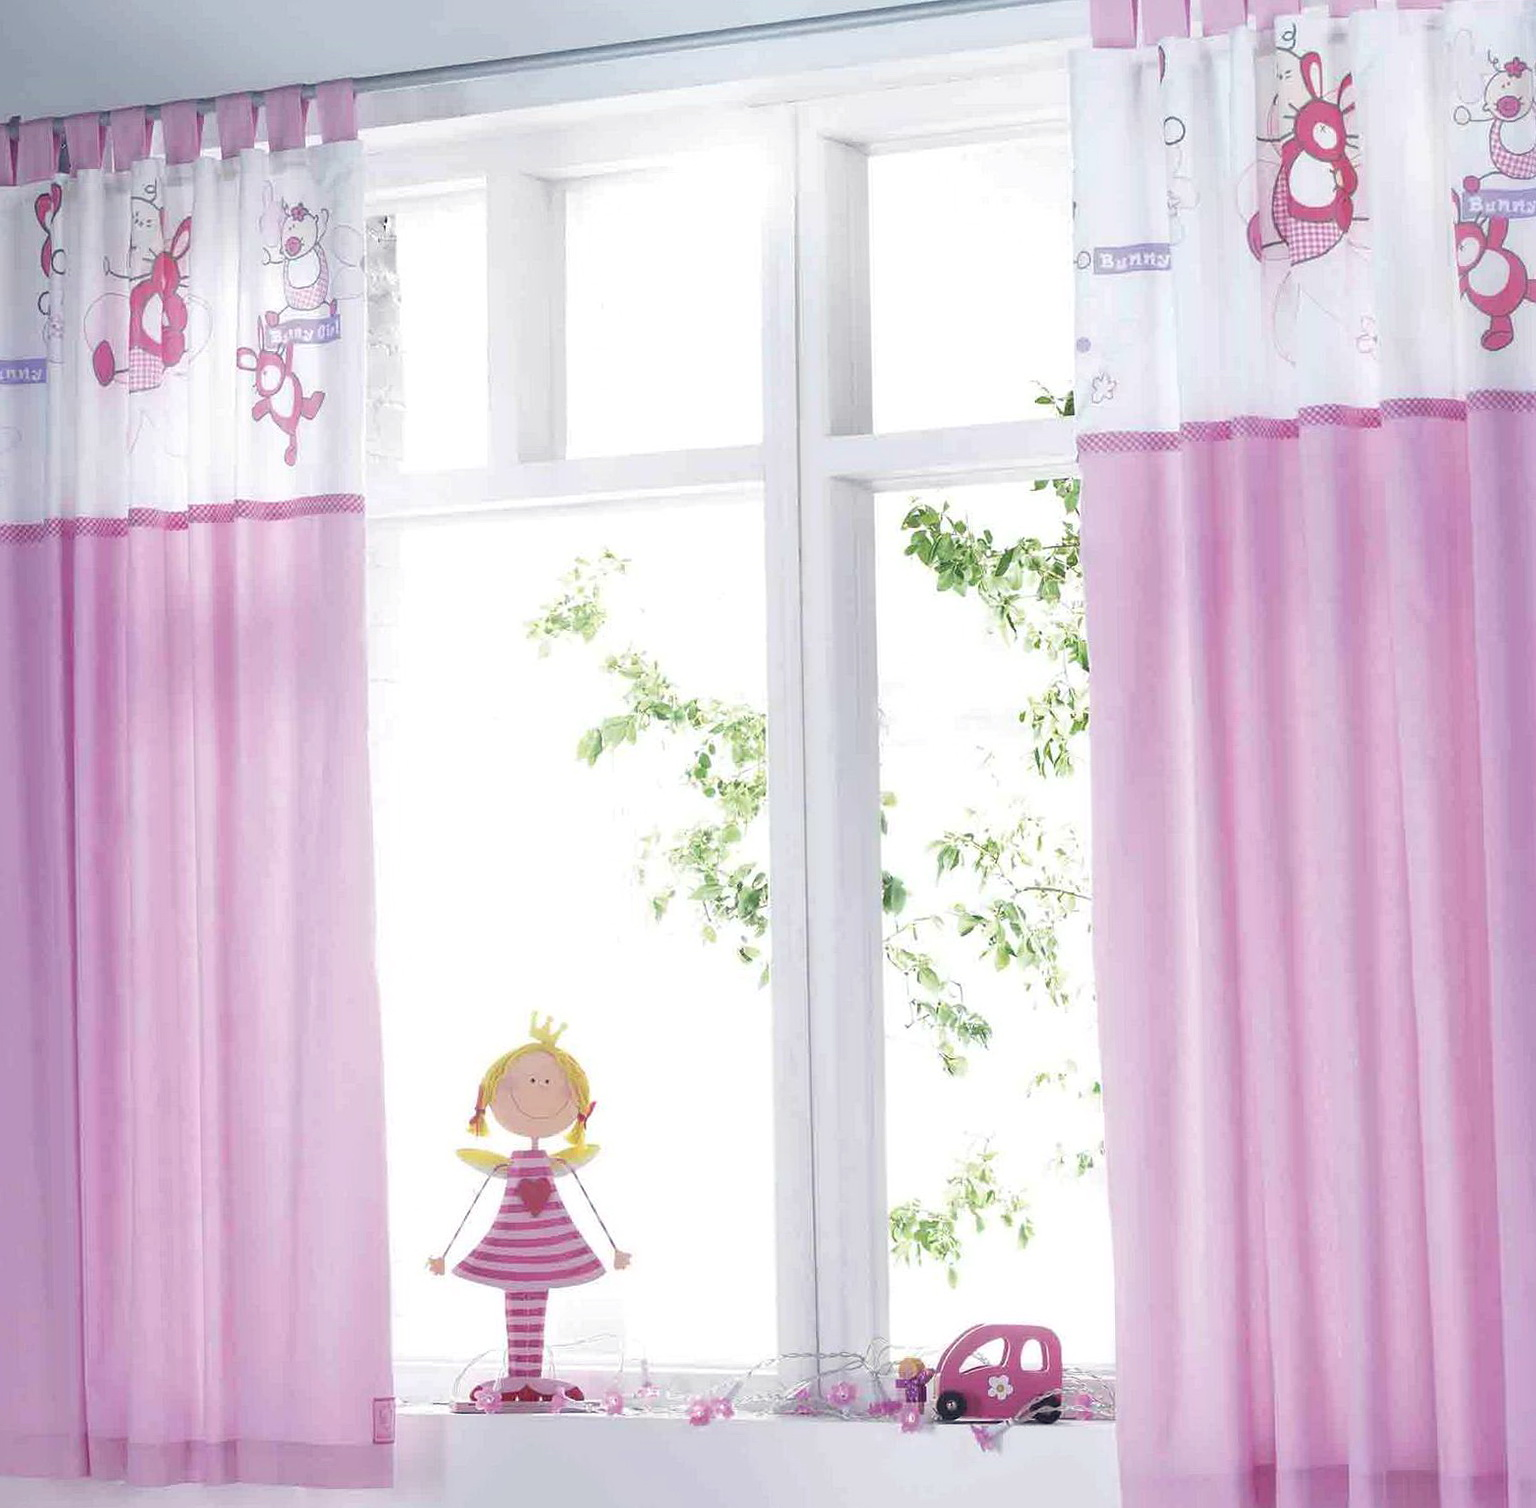 material next nursery barn curtains ideas curtain baby top bedding pottery kids sets room